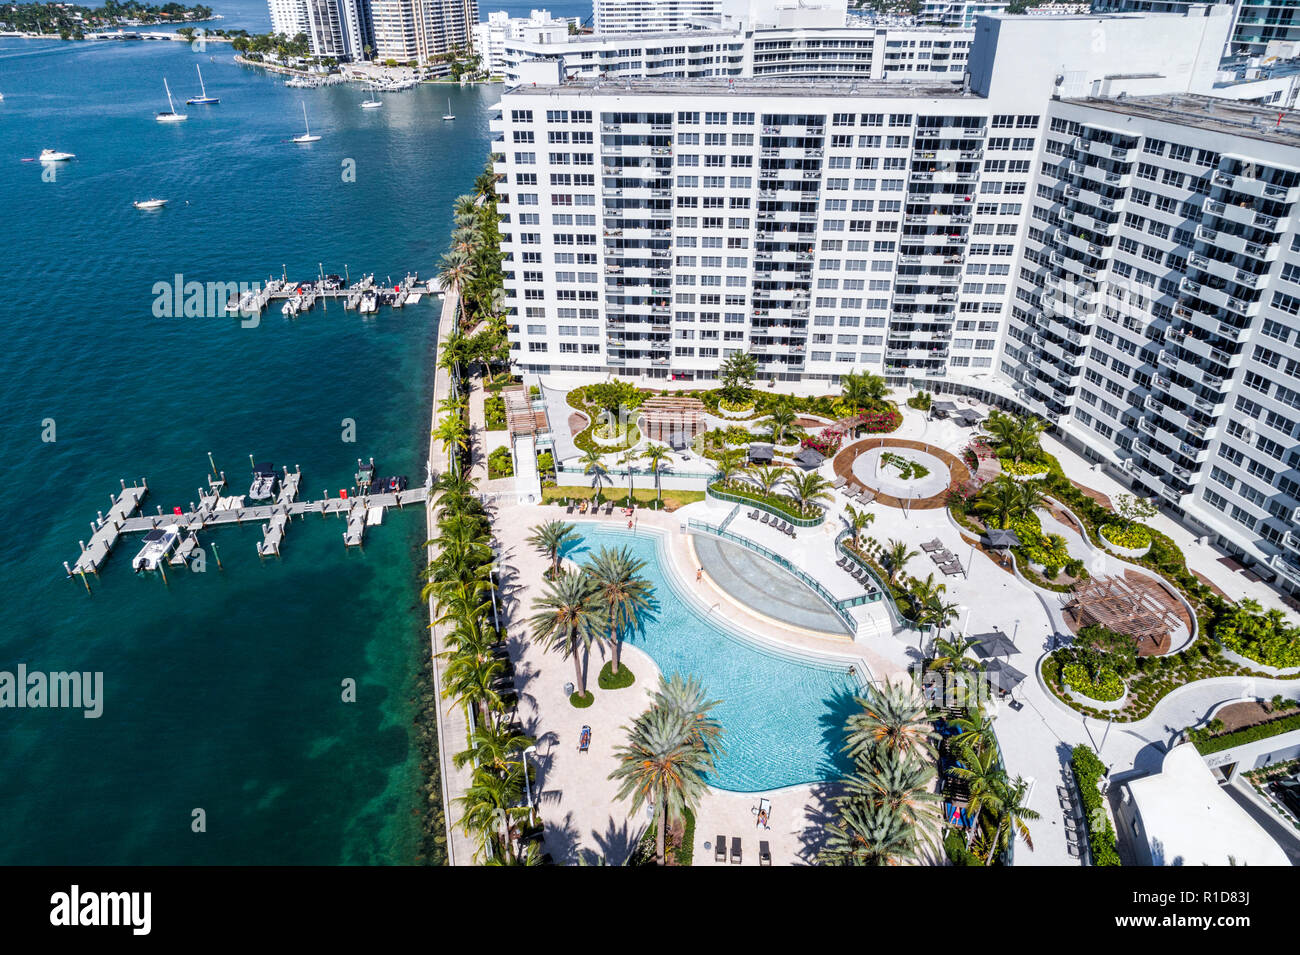 Miami Beach Florida Biscayne Bay aerial overhead bird's eye view above Flamingo South Beach condominium high rise buildings boats water waterfront swi - Stock Image